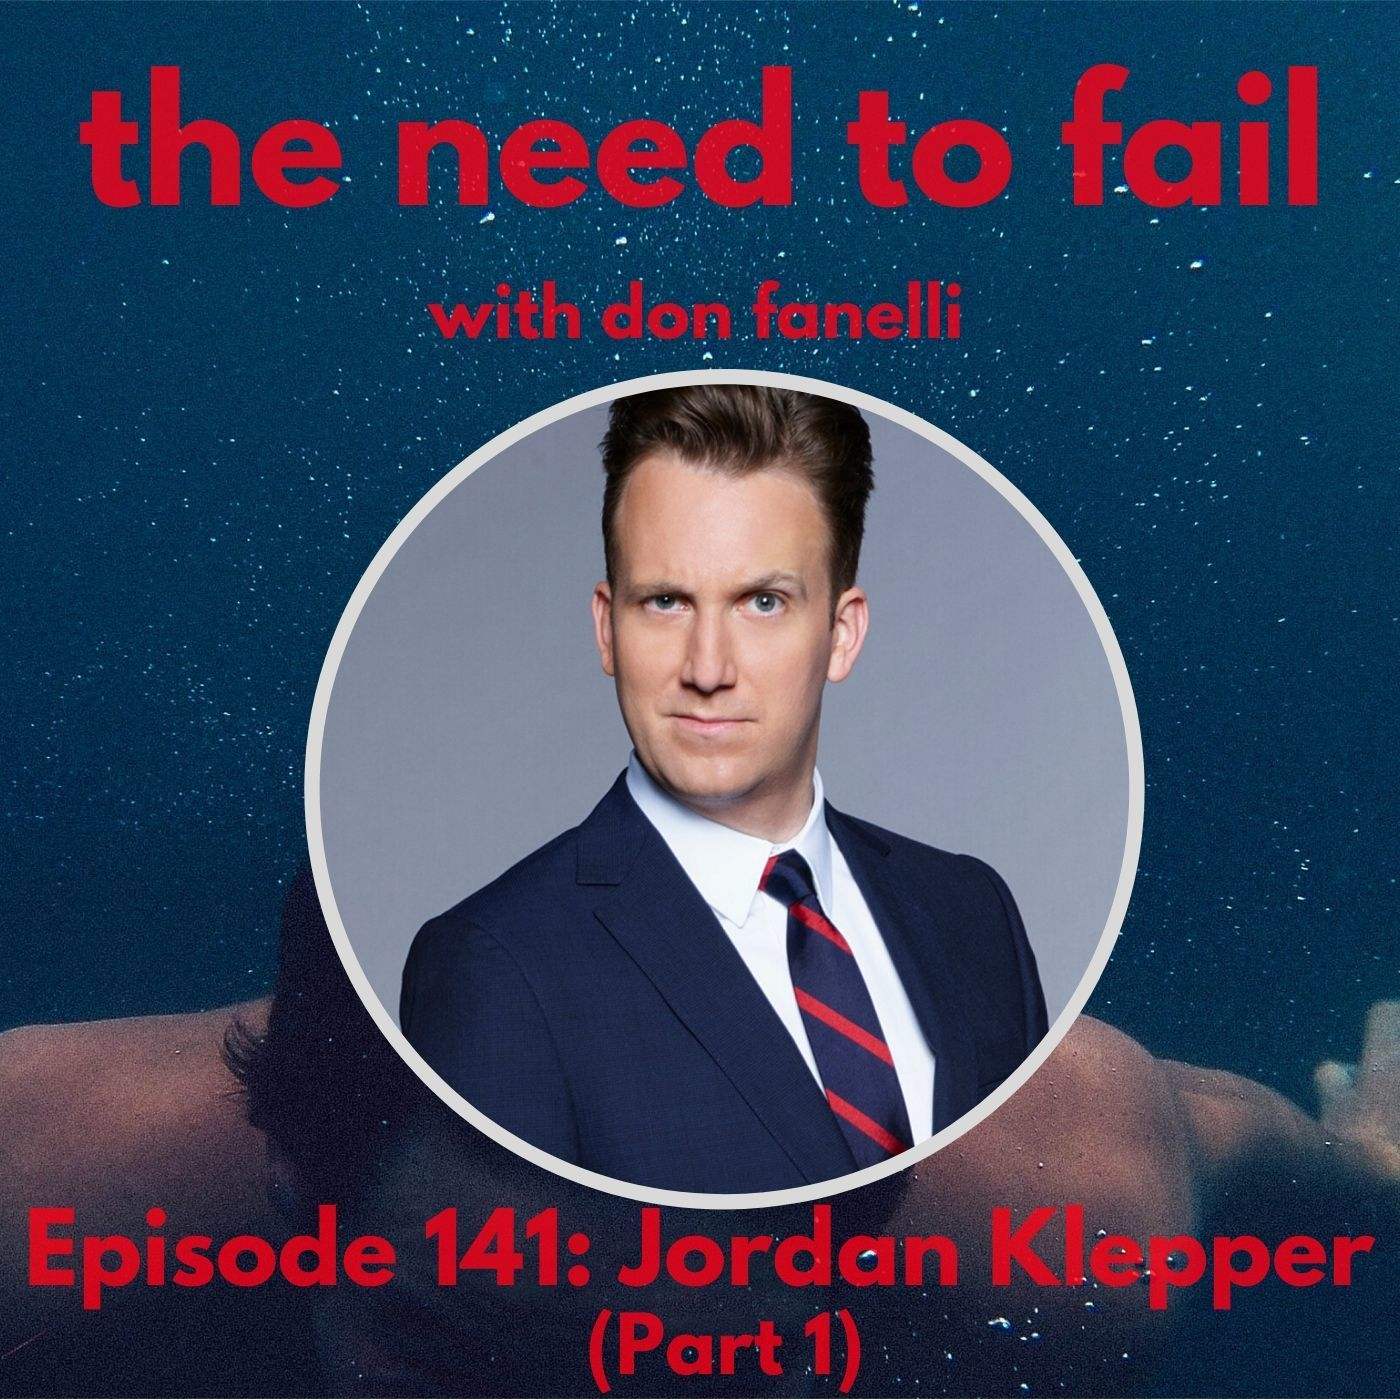 Episode 141: Jordan Klepper (Part 1)